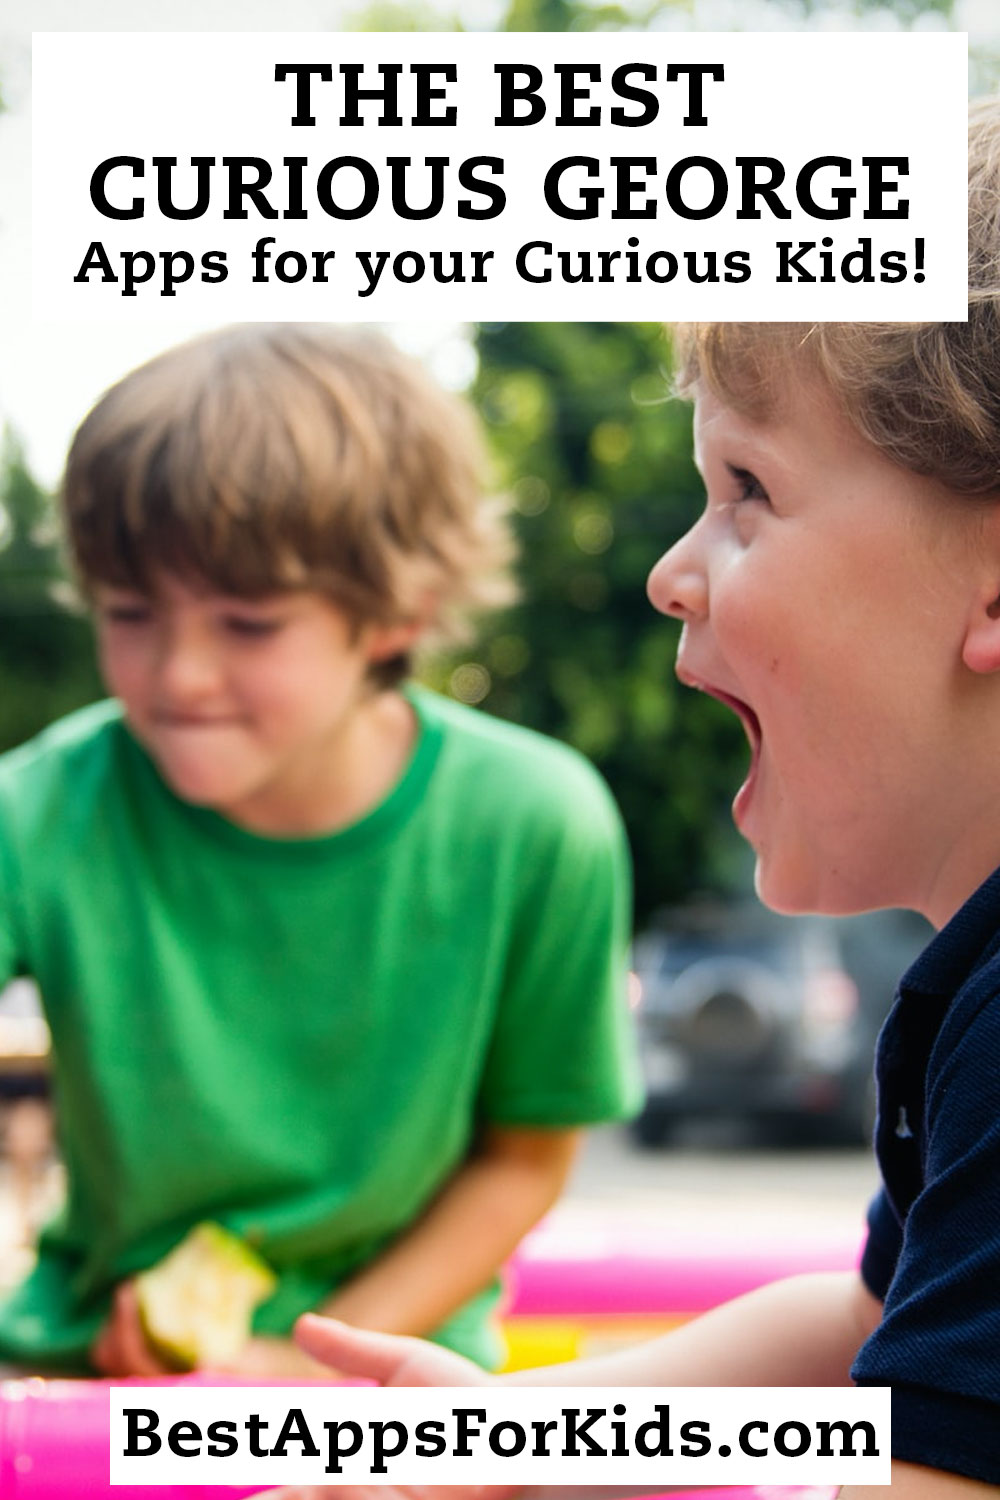 Best Curious George Apps